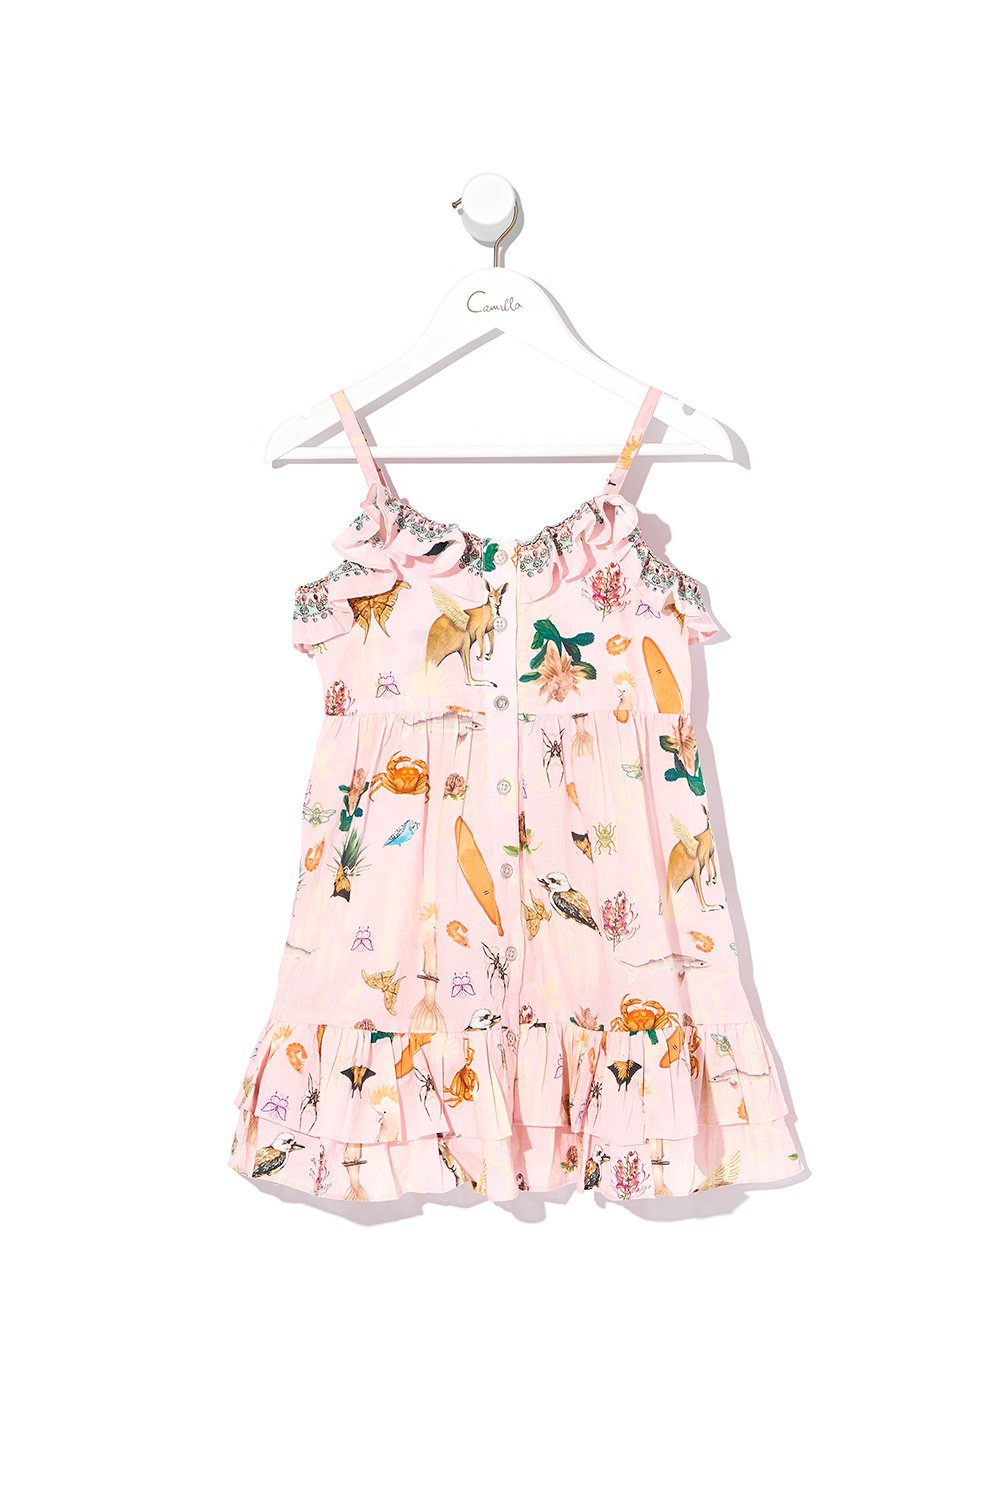 INFANTS BUTTON THROUGH FRILL DRESS OVER THE RAINBOW